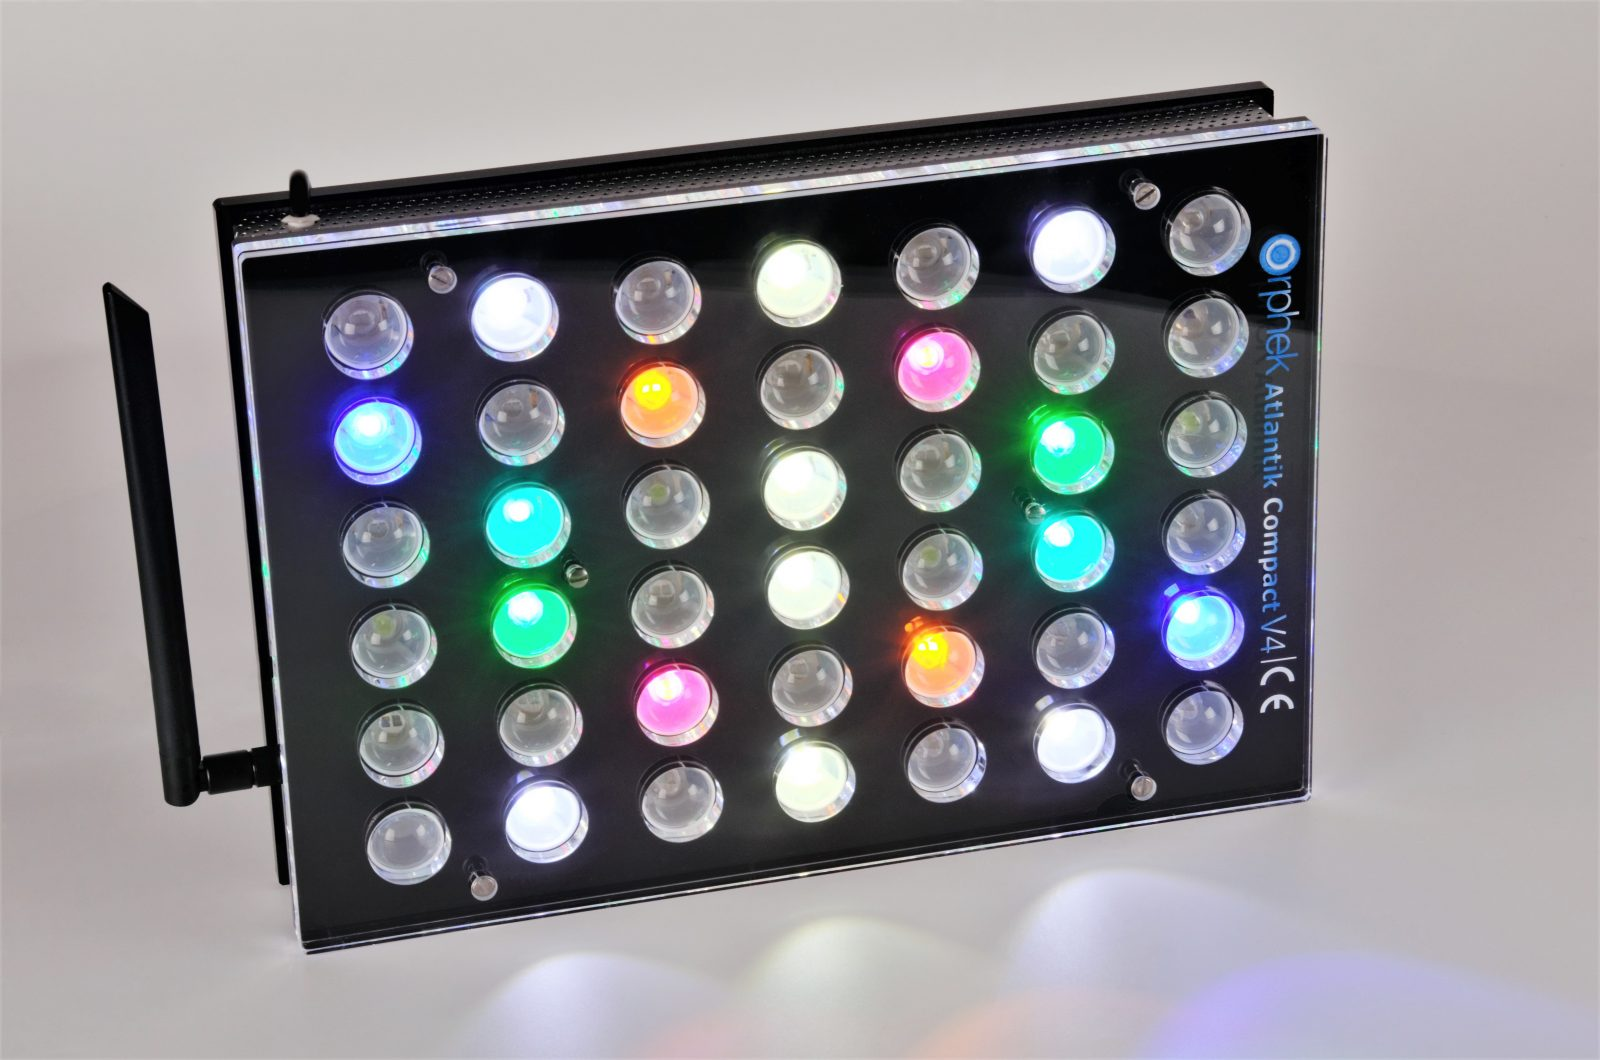 Orphek-Aquarium-LED-Lighting-Atlantik -Compact-V4-licht -on-kanaal 1 + 4